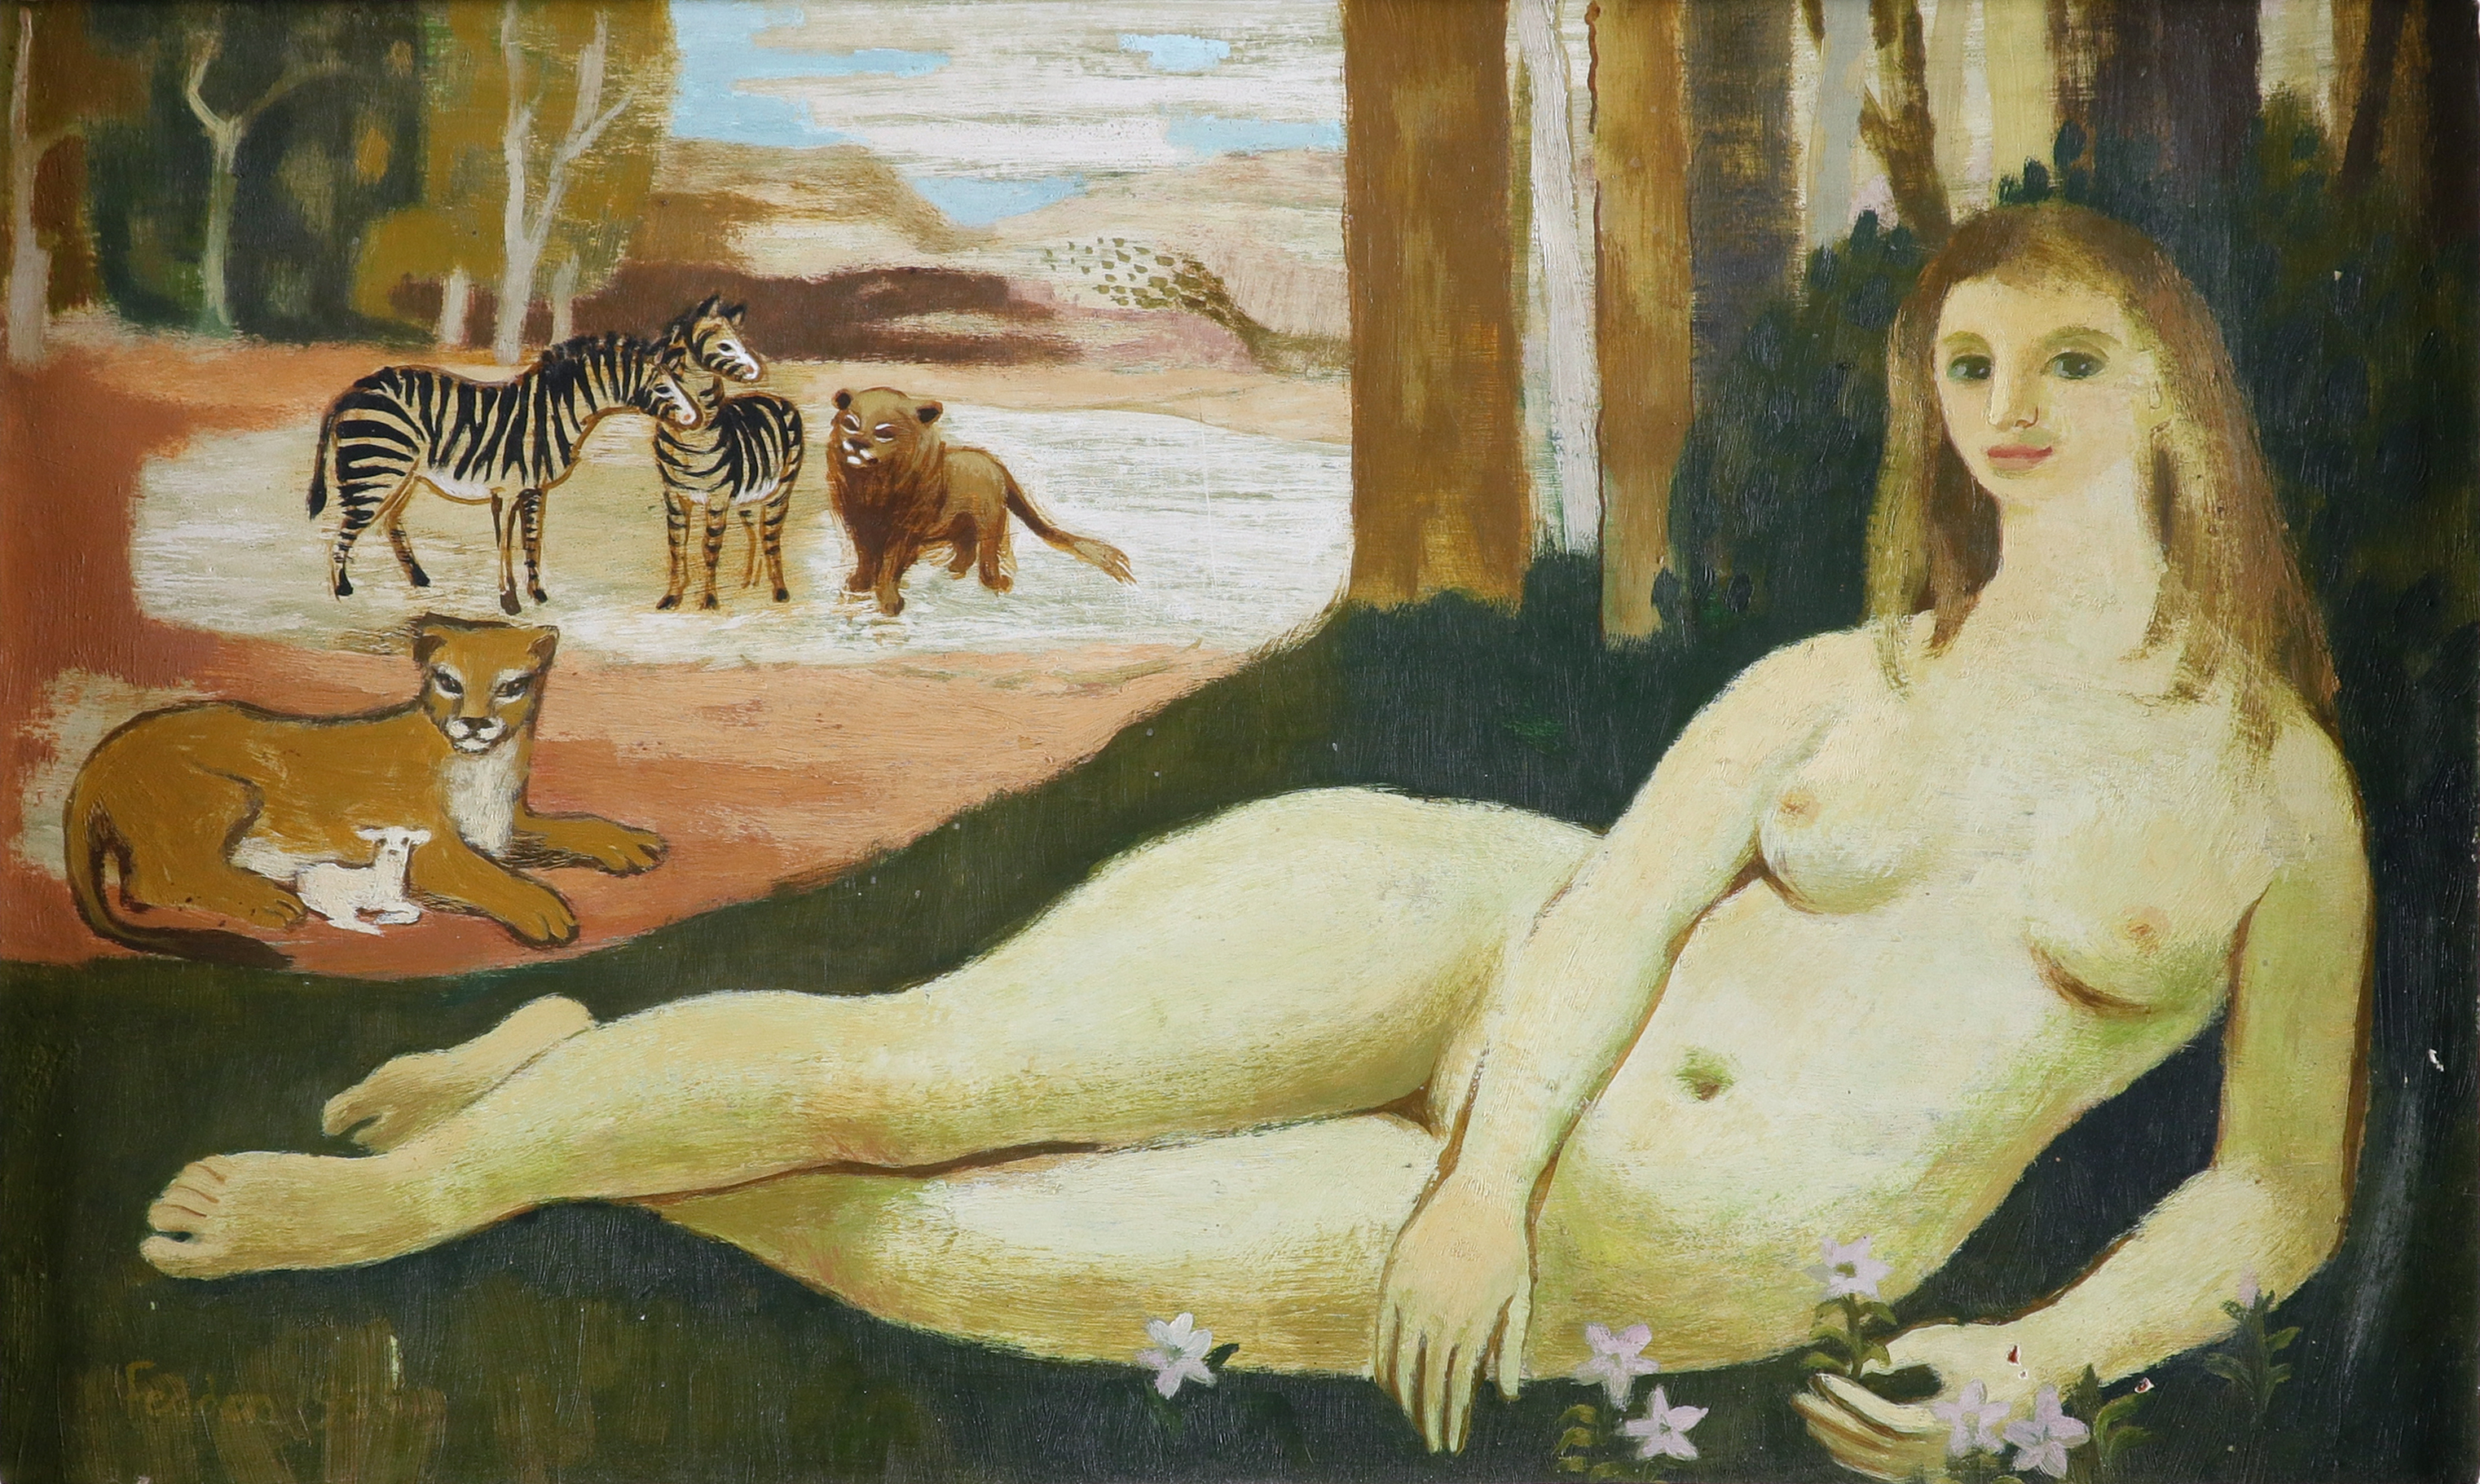 ‡Mary Fedden OBE, RA, RWA, (1915-2012) Landscape with a reclining female nude, lions and zebras